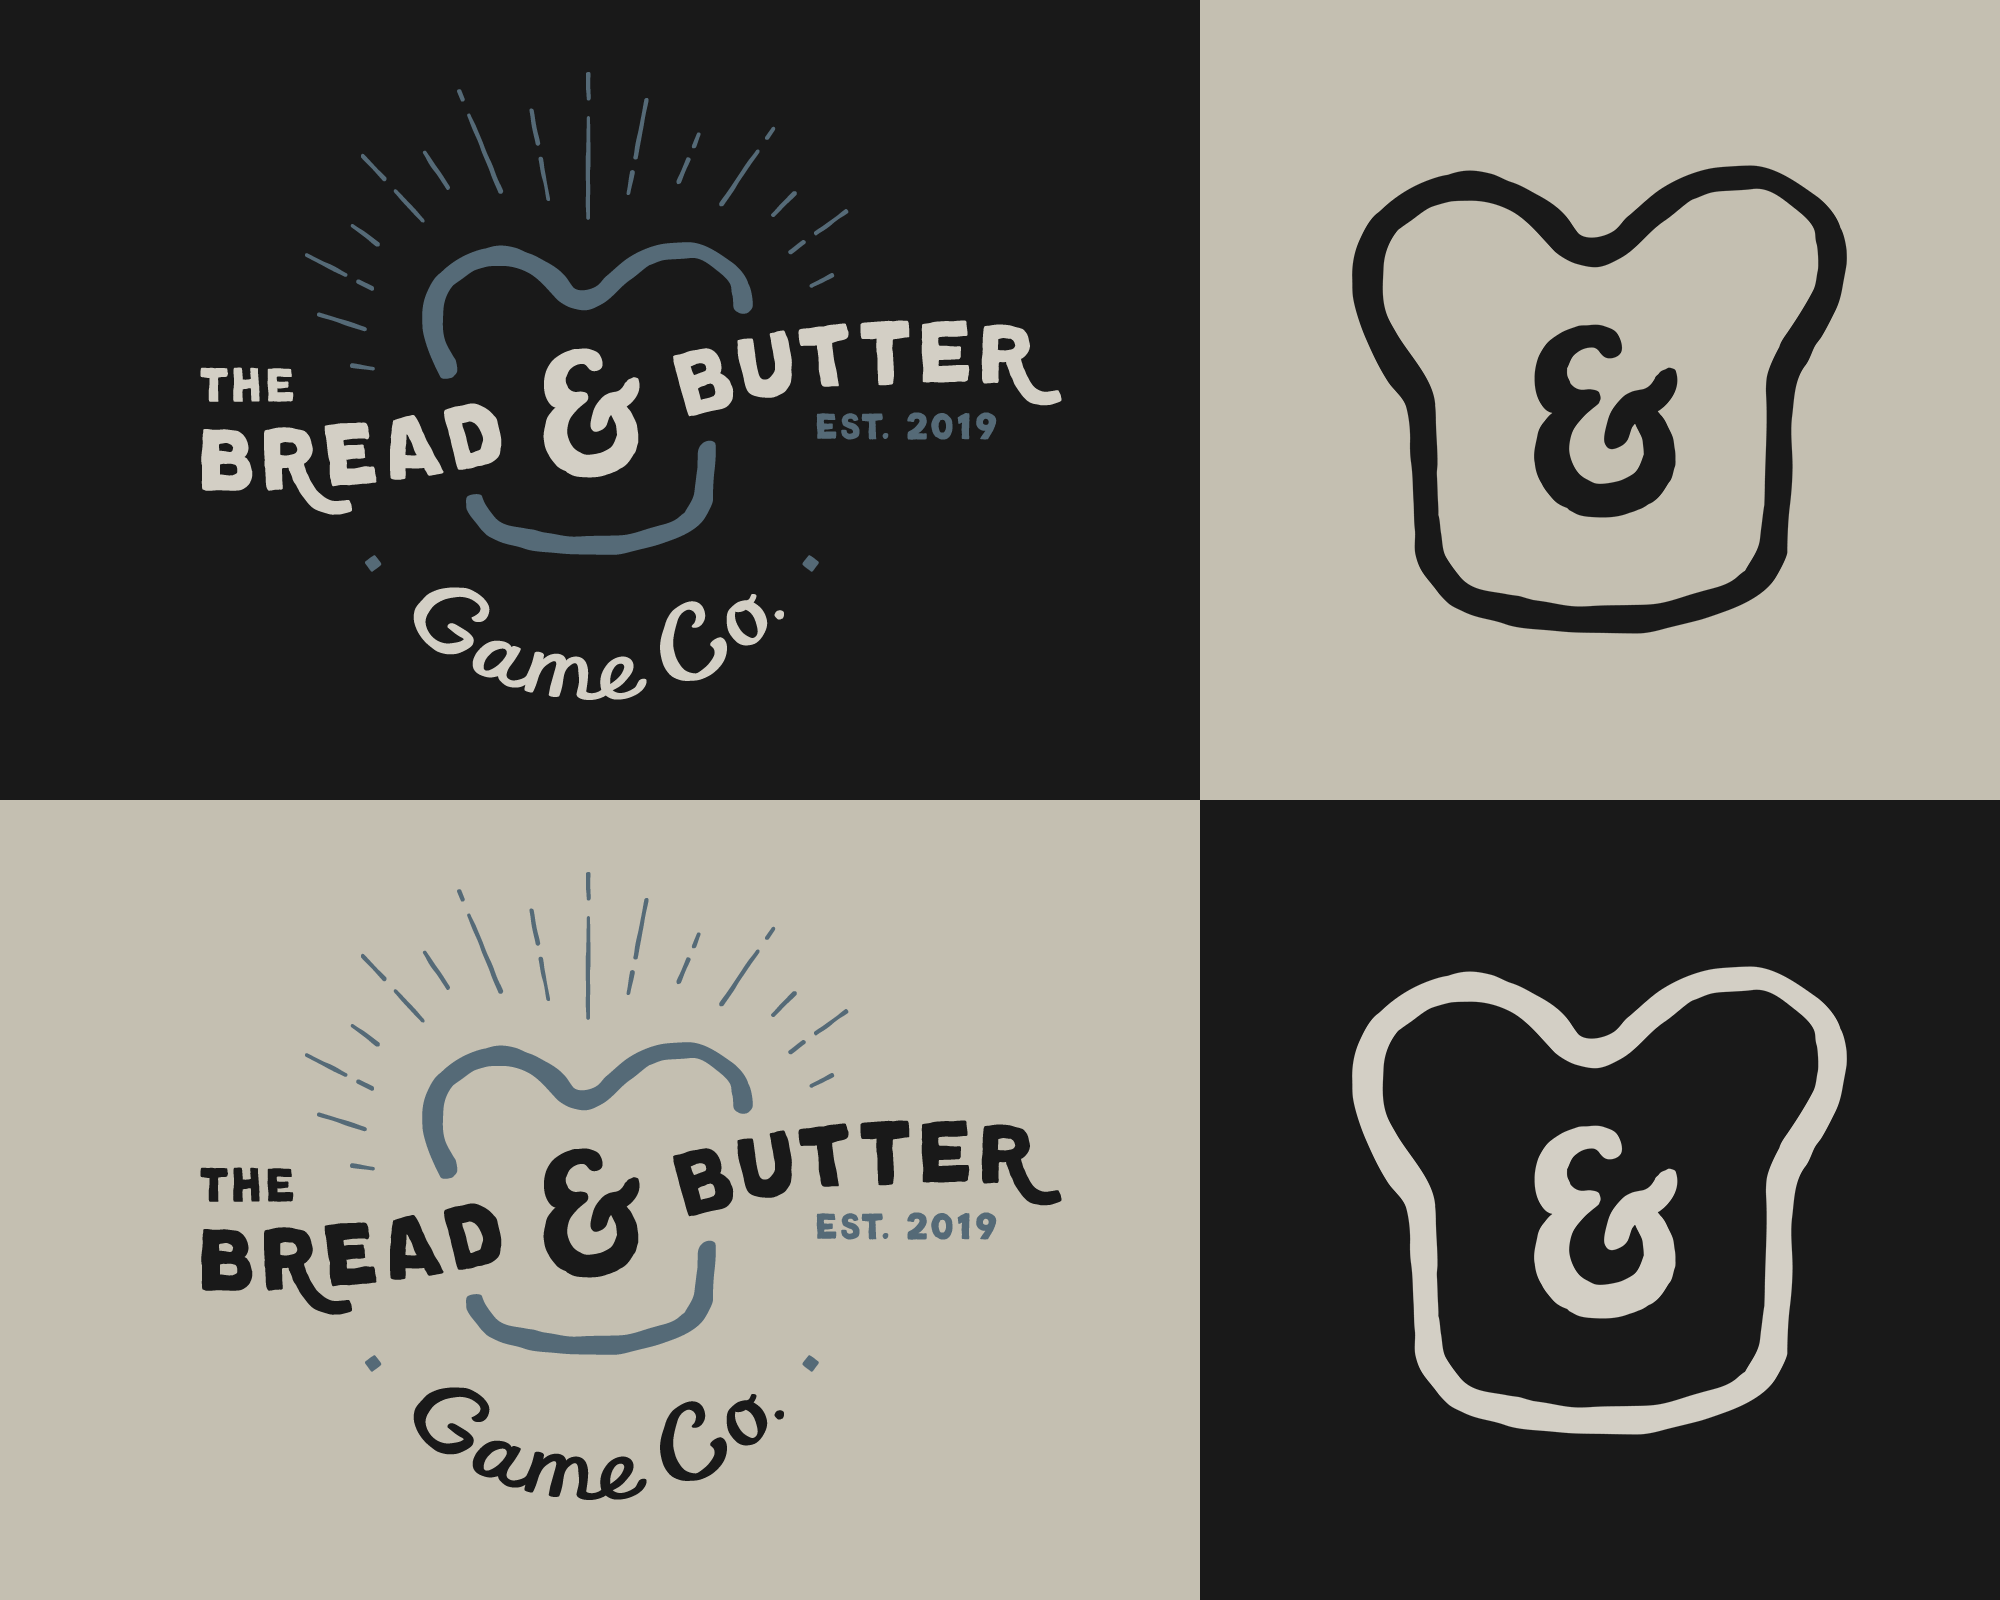 Logo variants for The Bread & Butter Game Co.